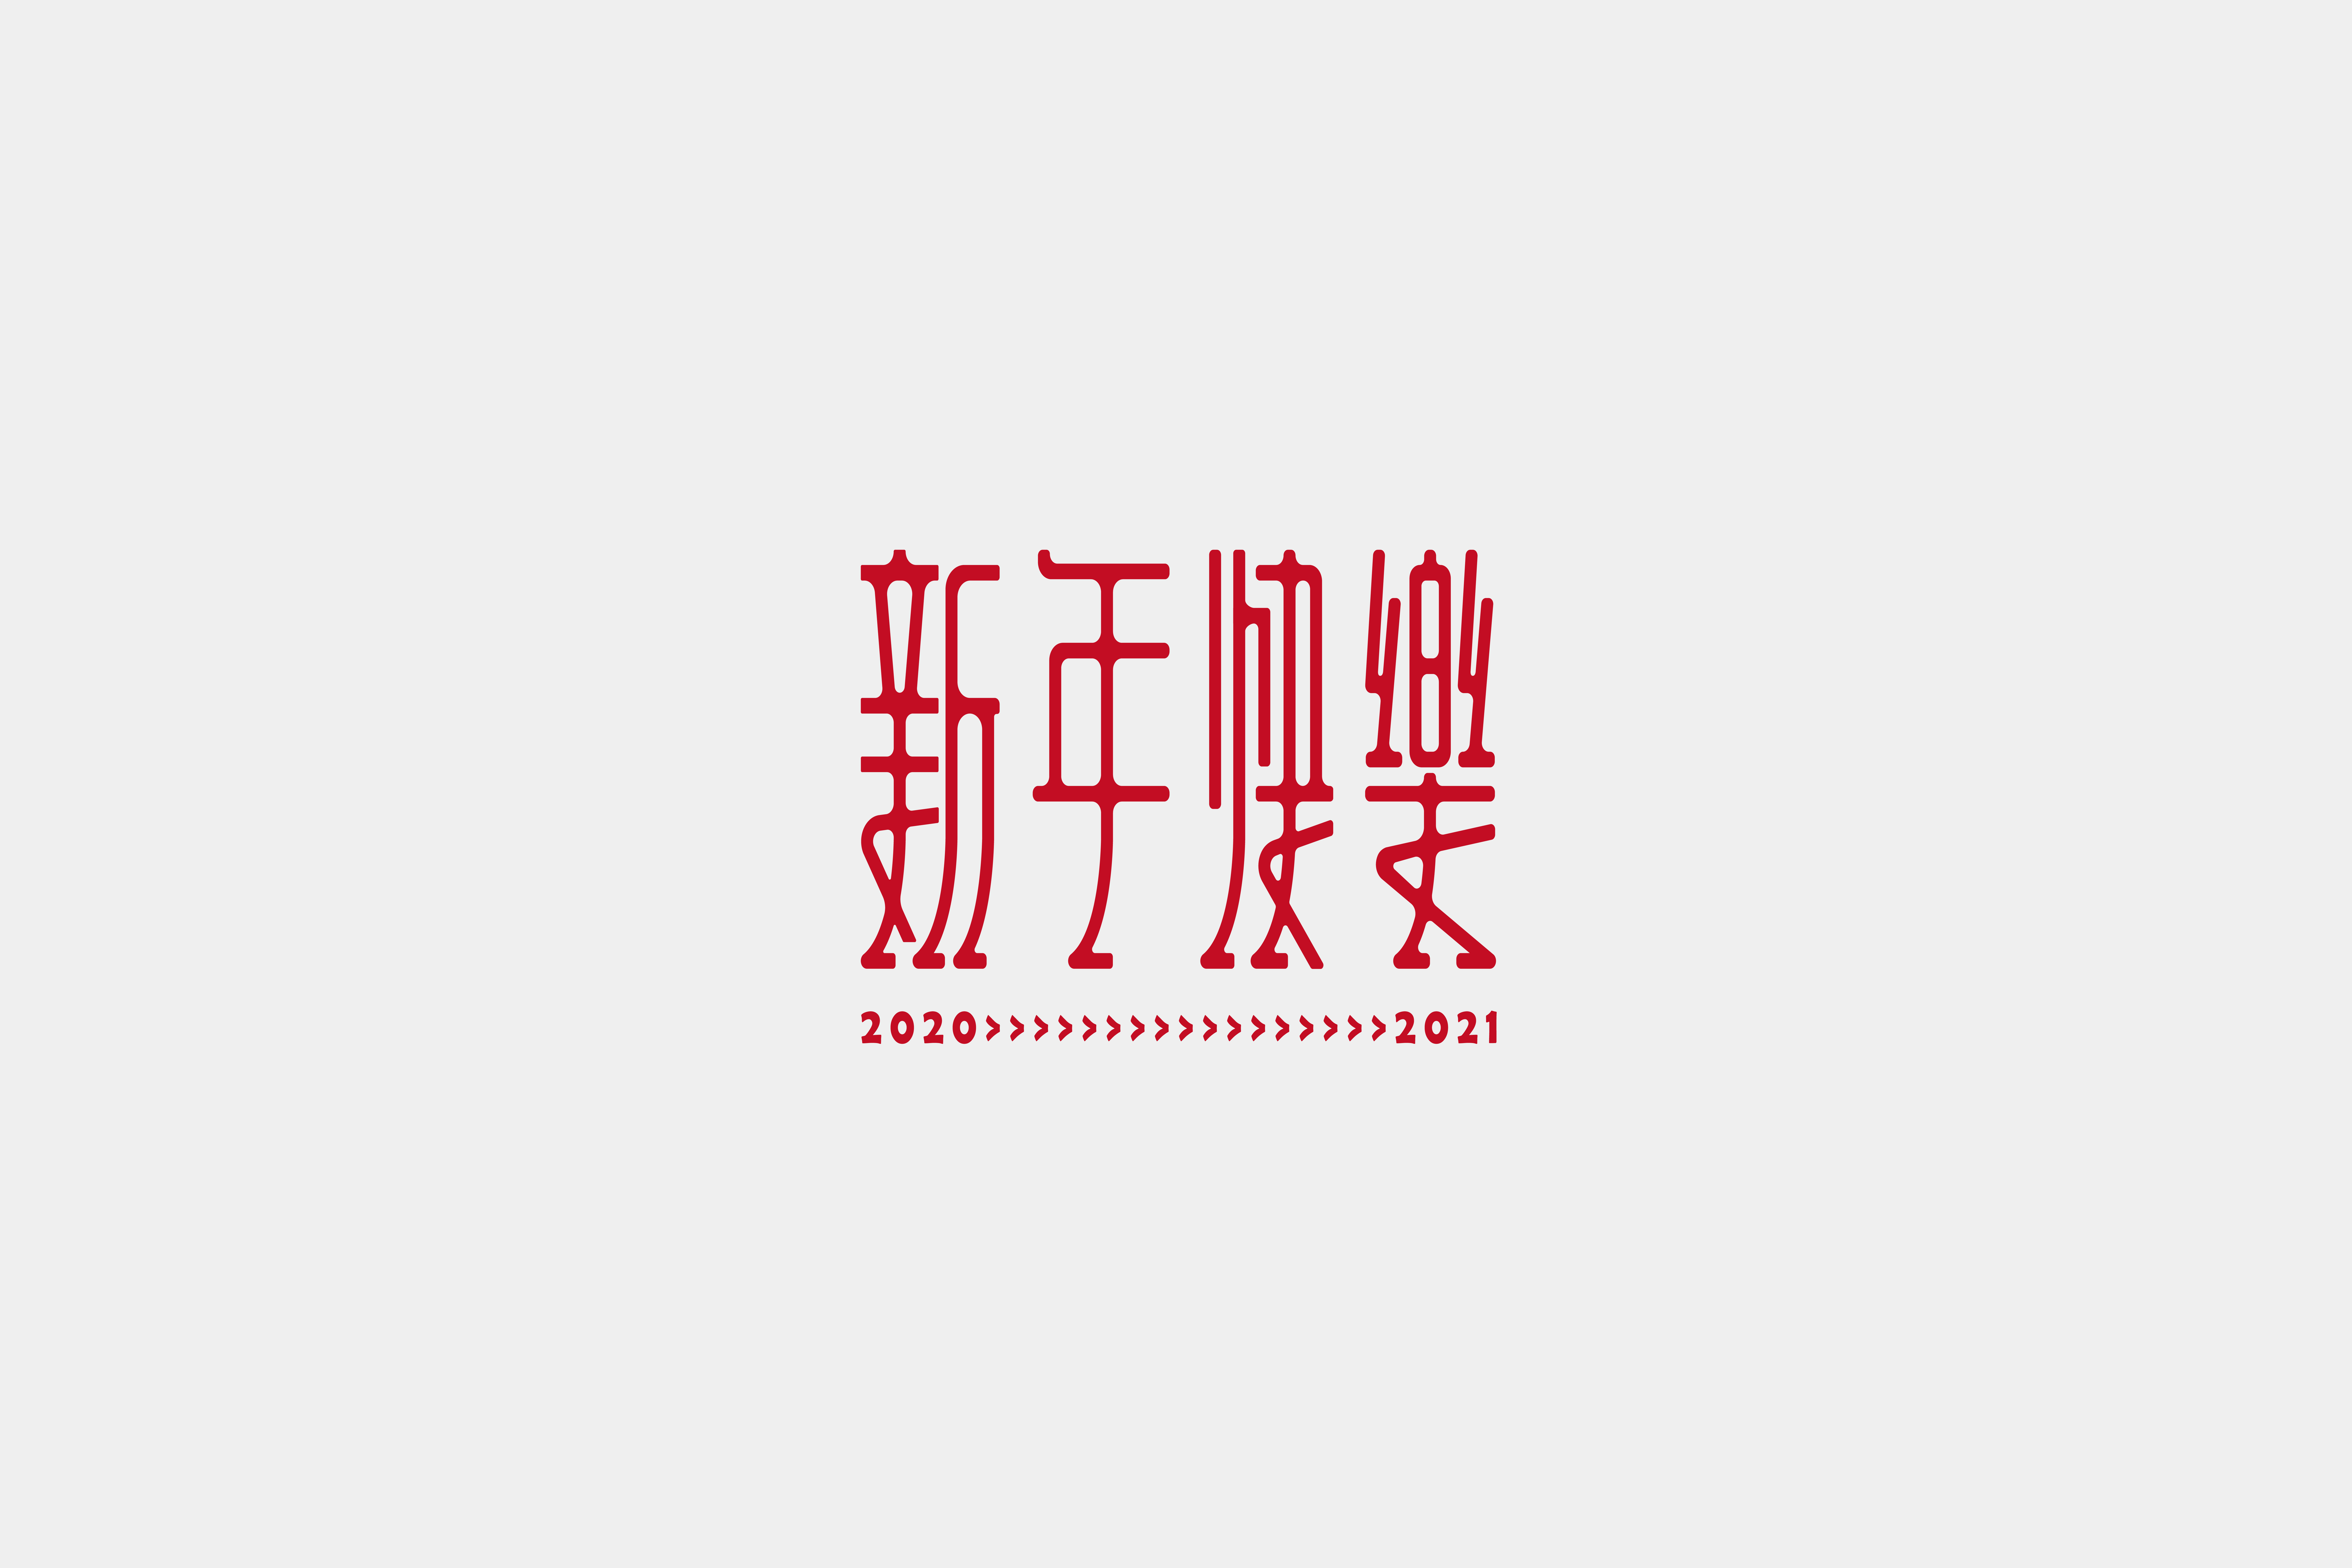 Small and exquisite design of some fonts